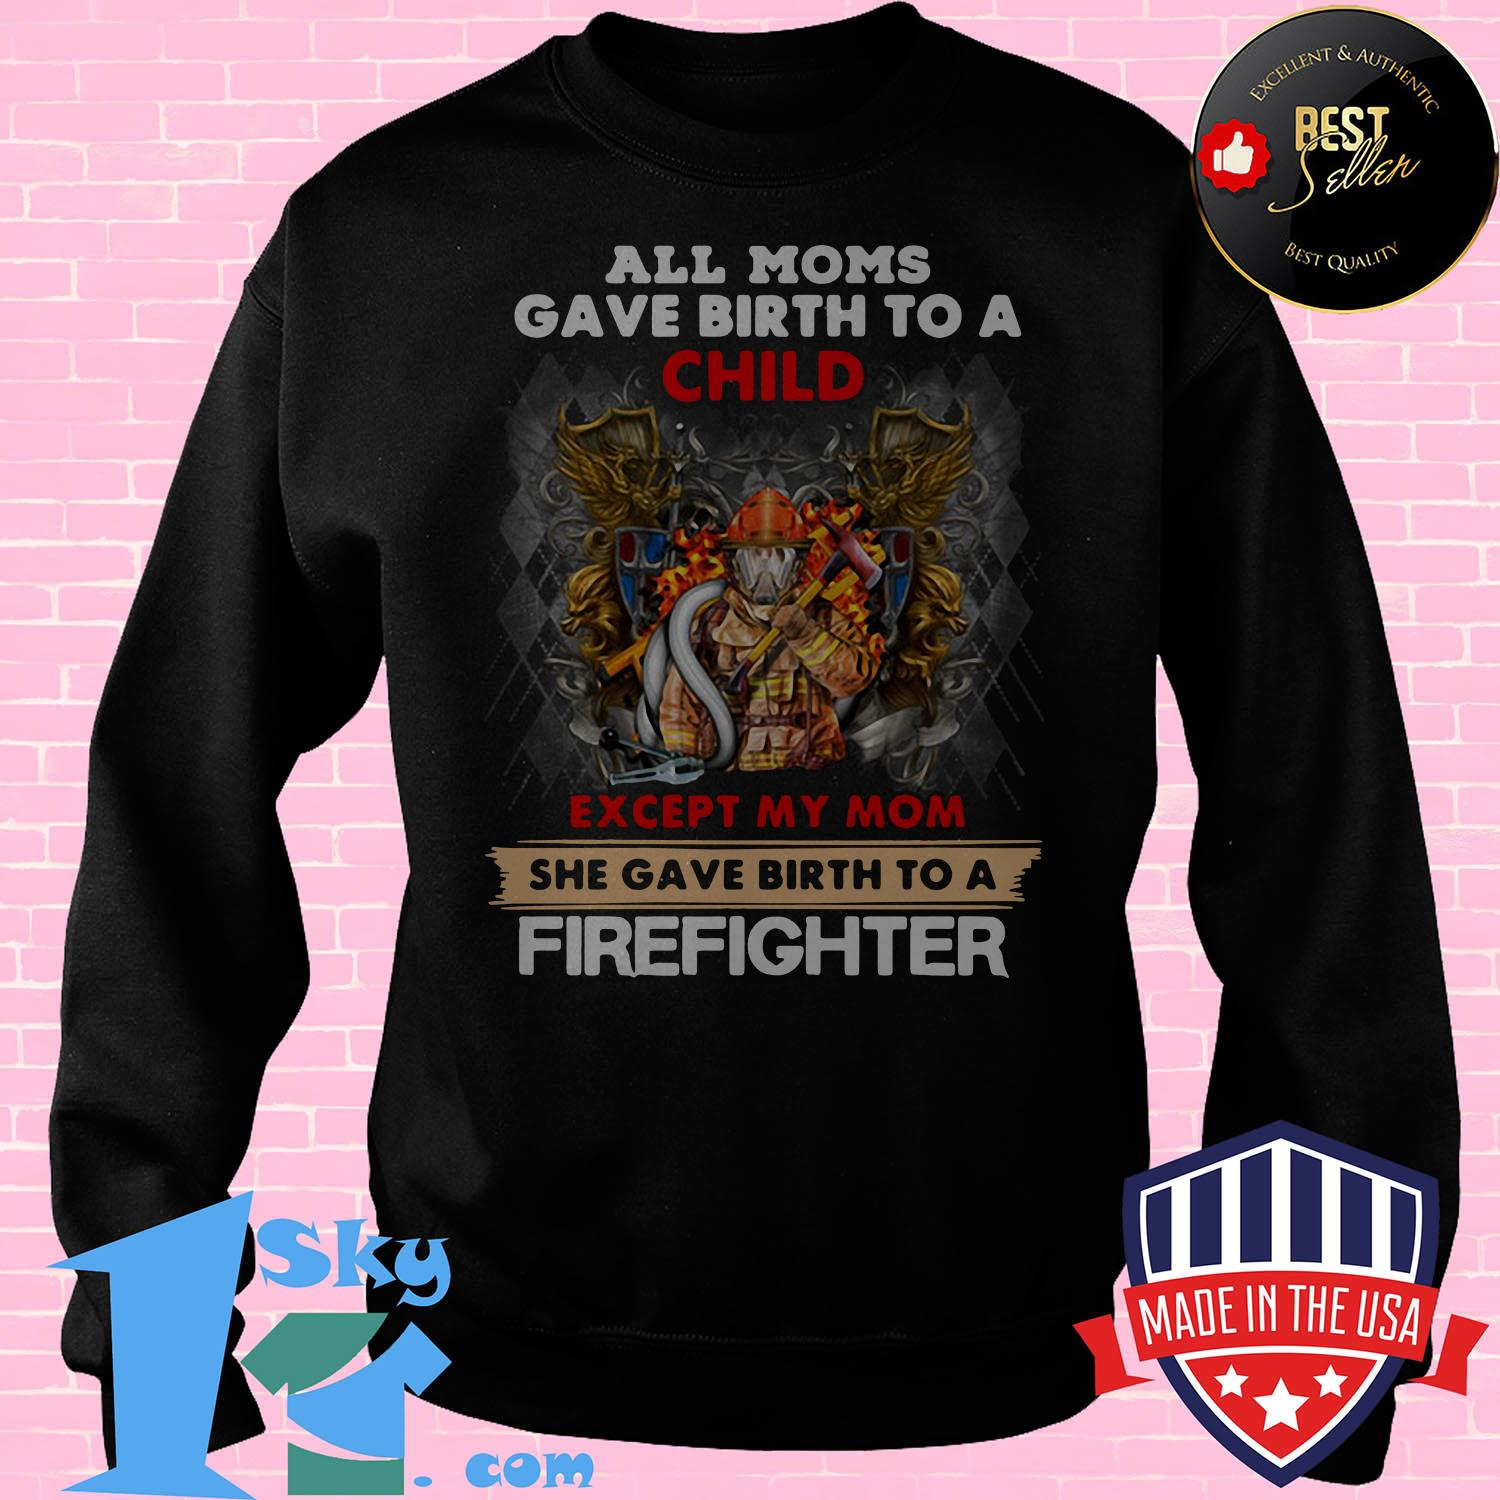 all moms gave birth to a child except my mom she gave birth a firefighter sweatshirt - All moms gave birth to a child except my mom she gave birth a firefighter shirt